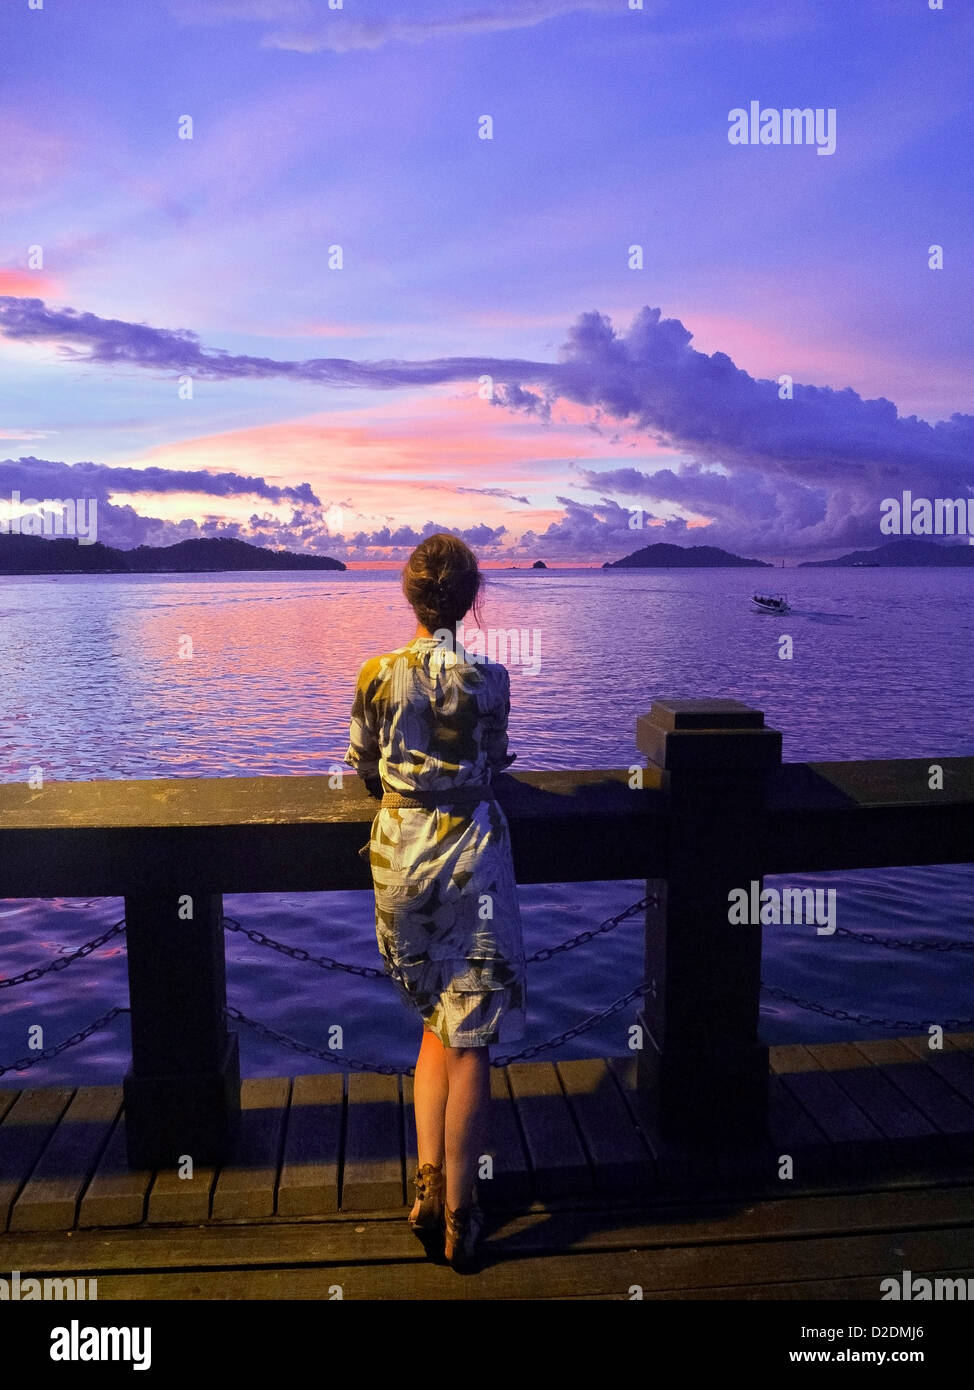 Malaysia, Borneo, Kota Kinabalu, South China Sea, Young woman watching the sunset - Stock Image